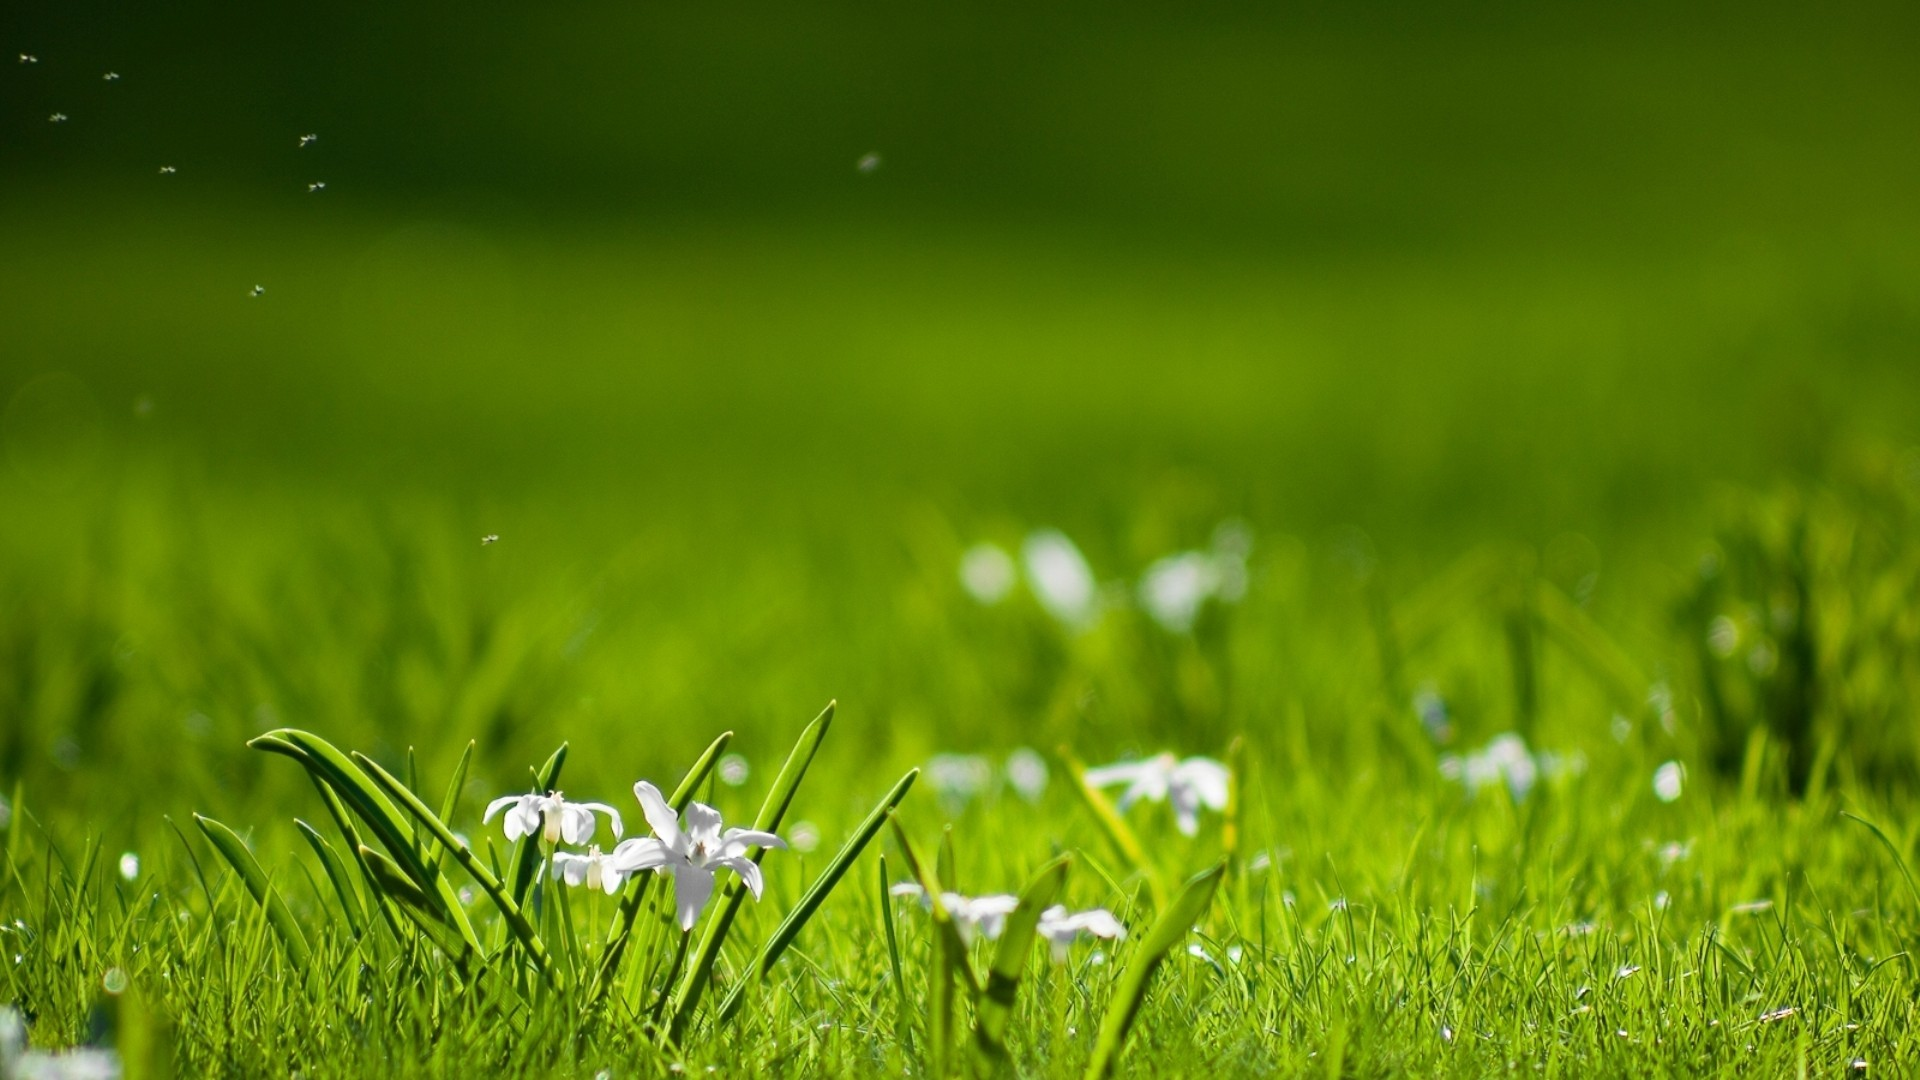 Green Grass Nature Background 4238651 1920x1080 All 1920x1080